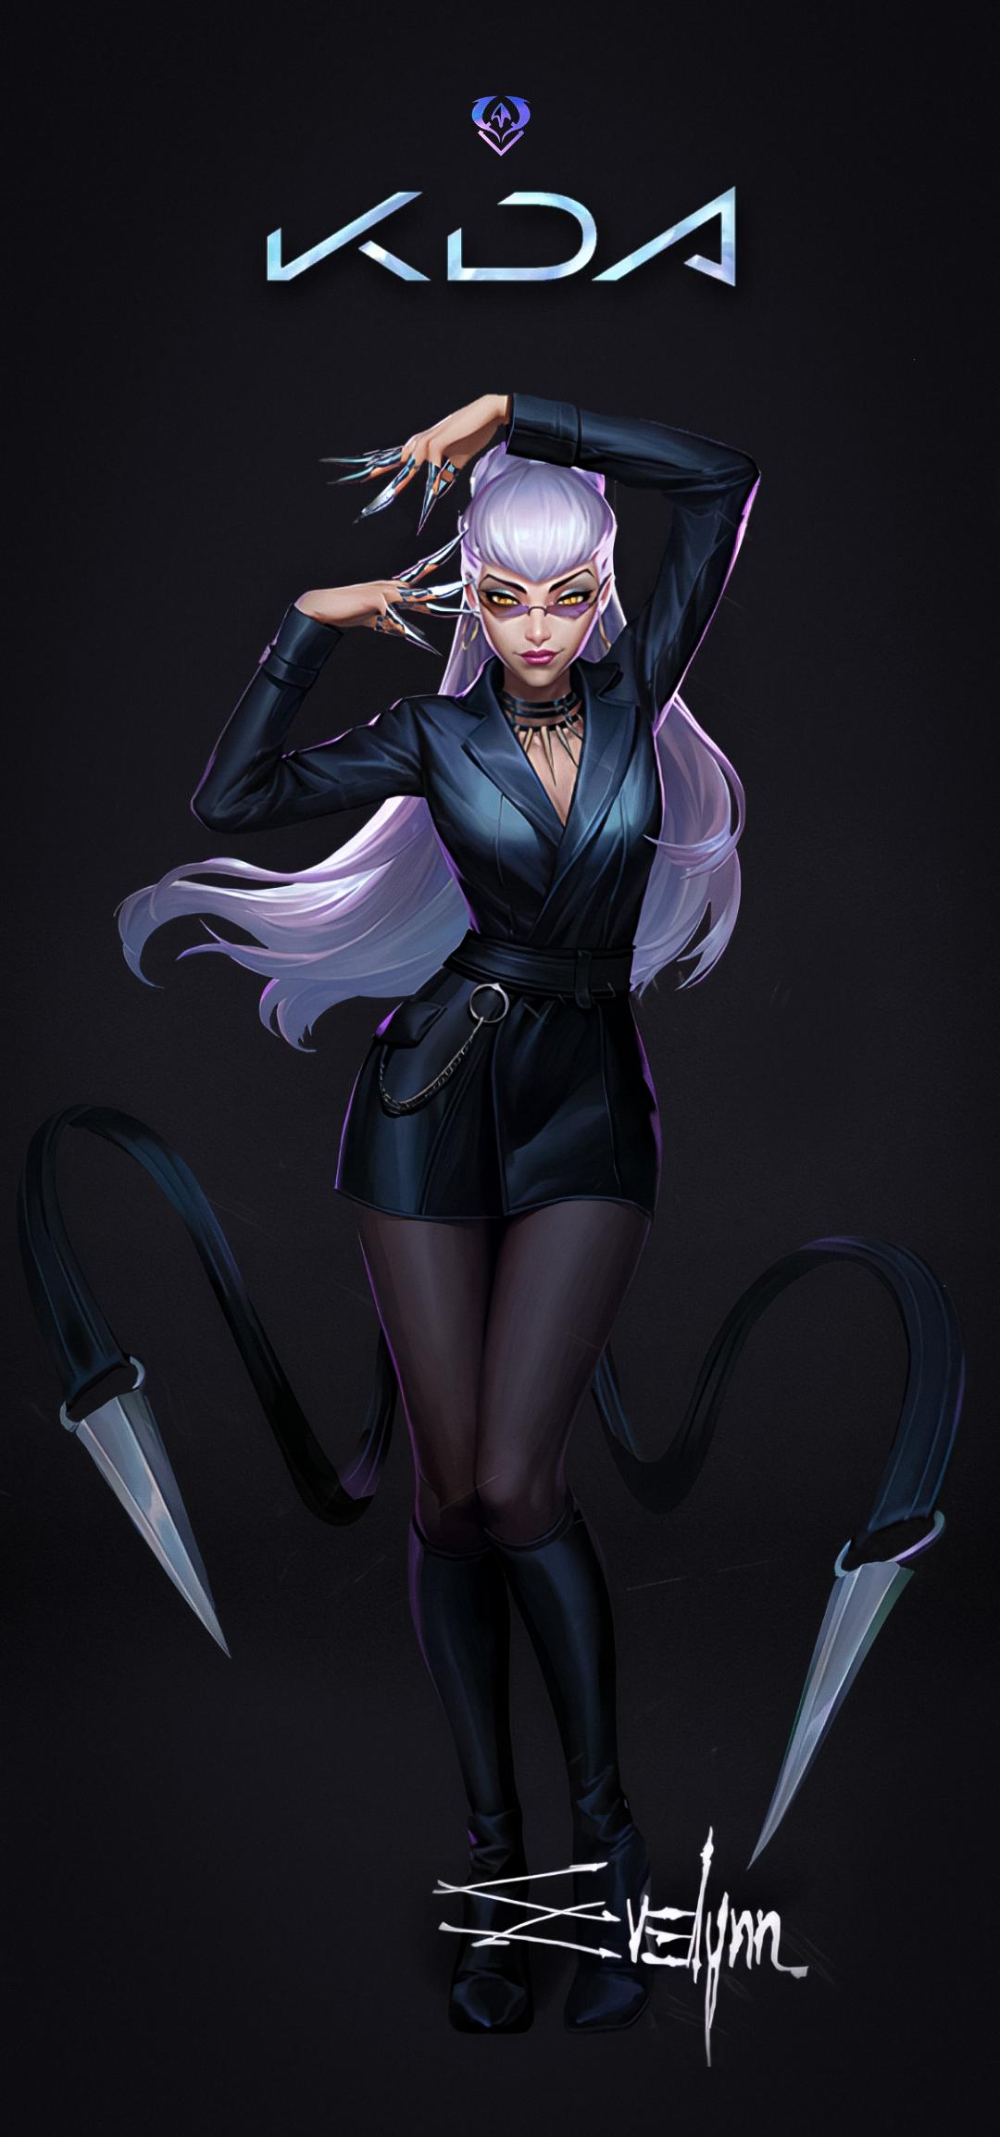 K Da The Baddest Evelynn Wallpaper Evelynnmains In 2020 Lol League Of Legends League Of Legends League Of Legends Characters